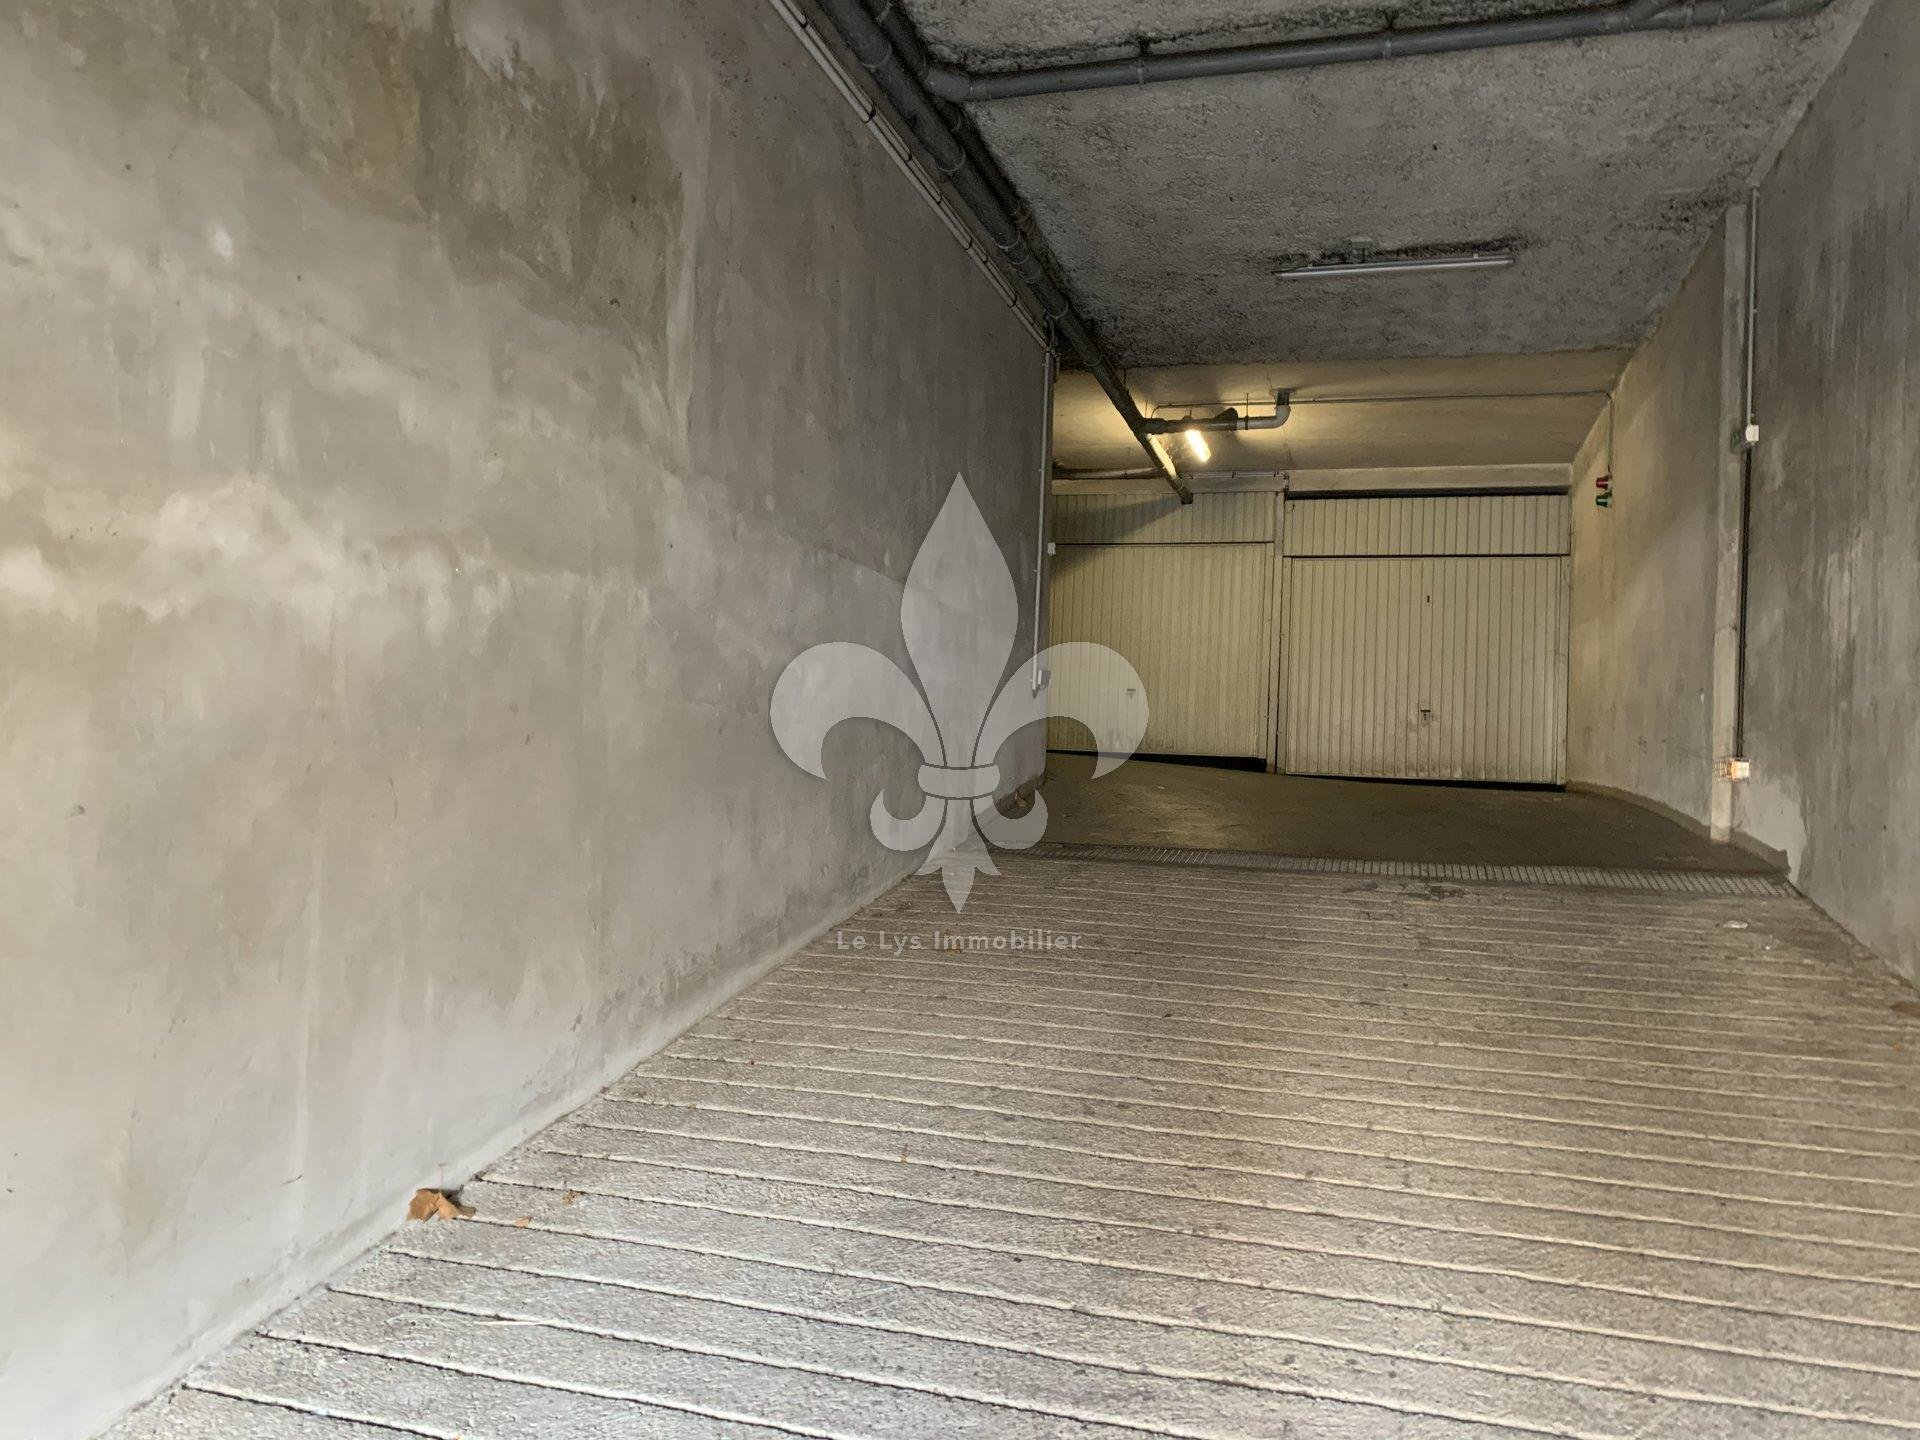 Cannes - Banane: Garage on the 1st floor of a luxury building with elevator